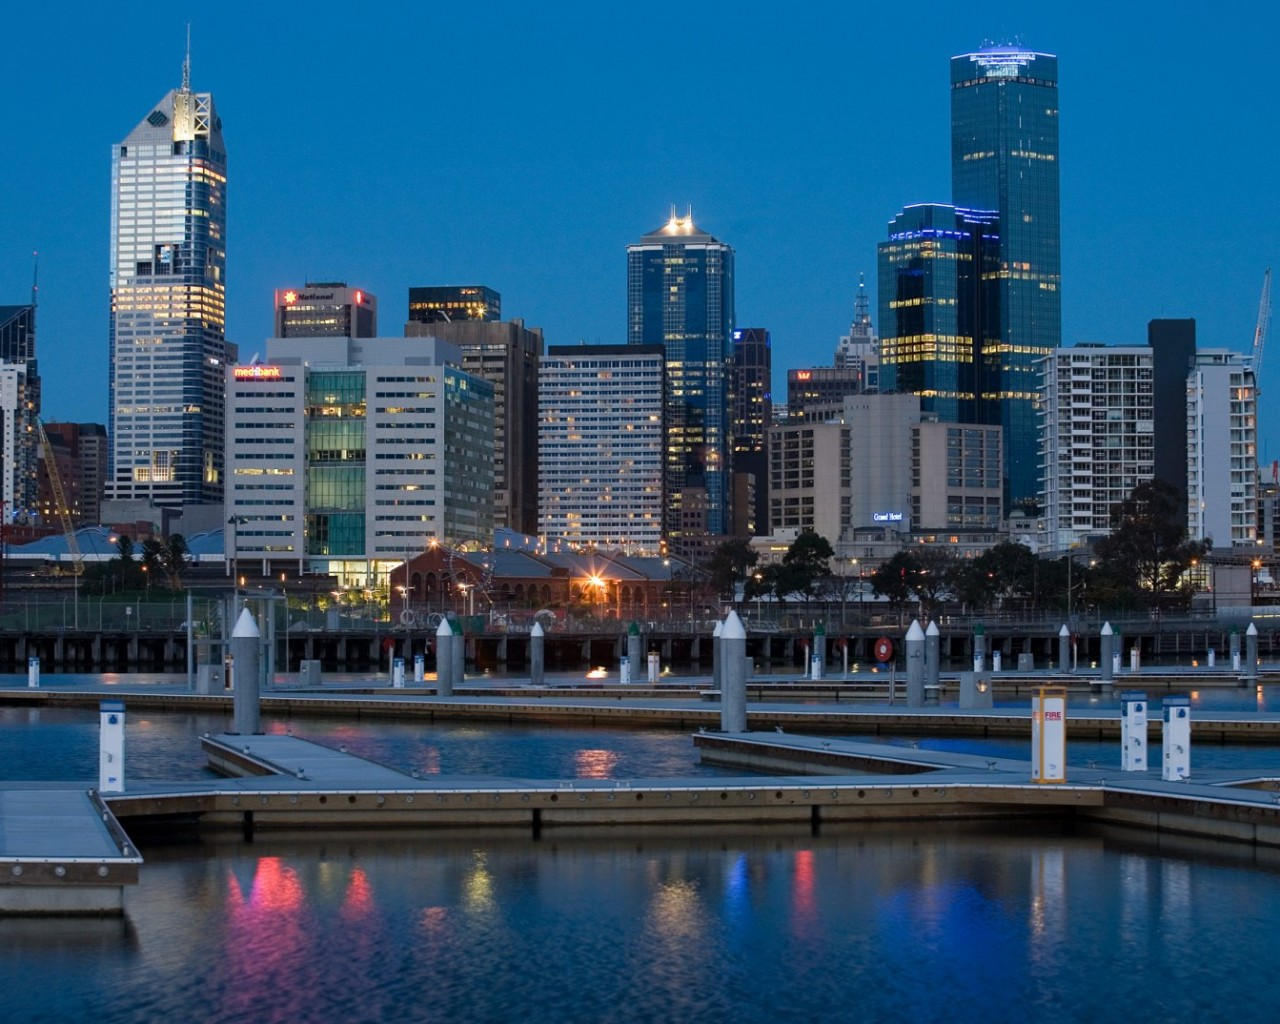 melbourne docklands 1280 x 1024